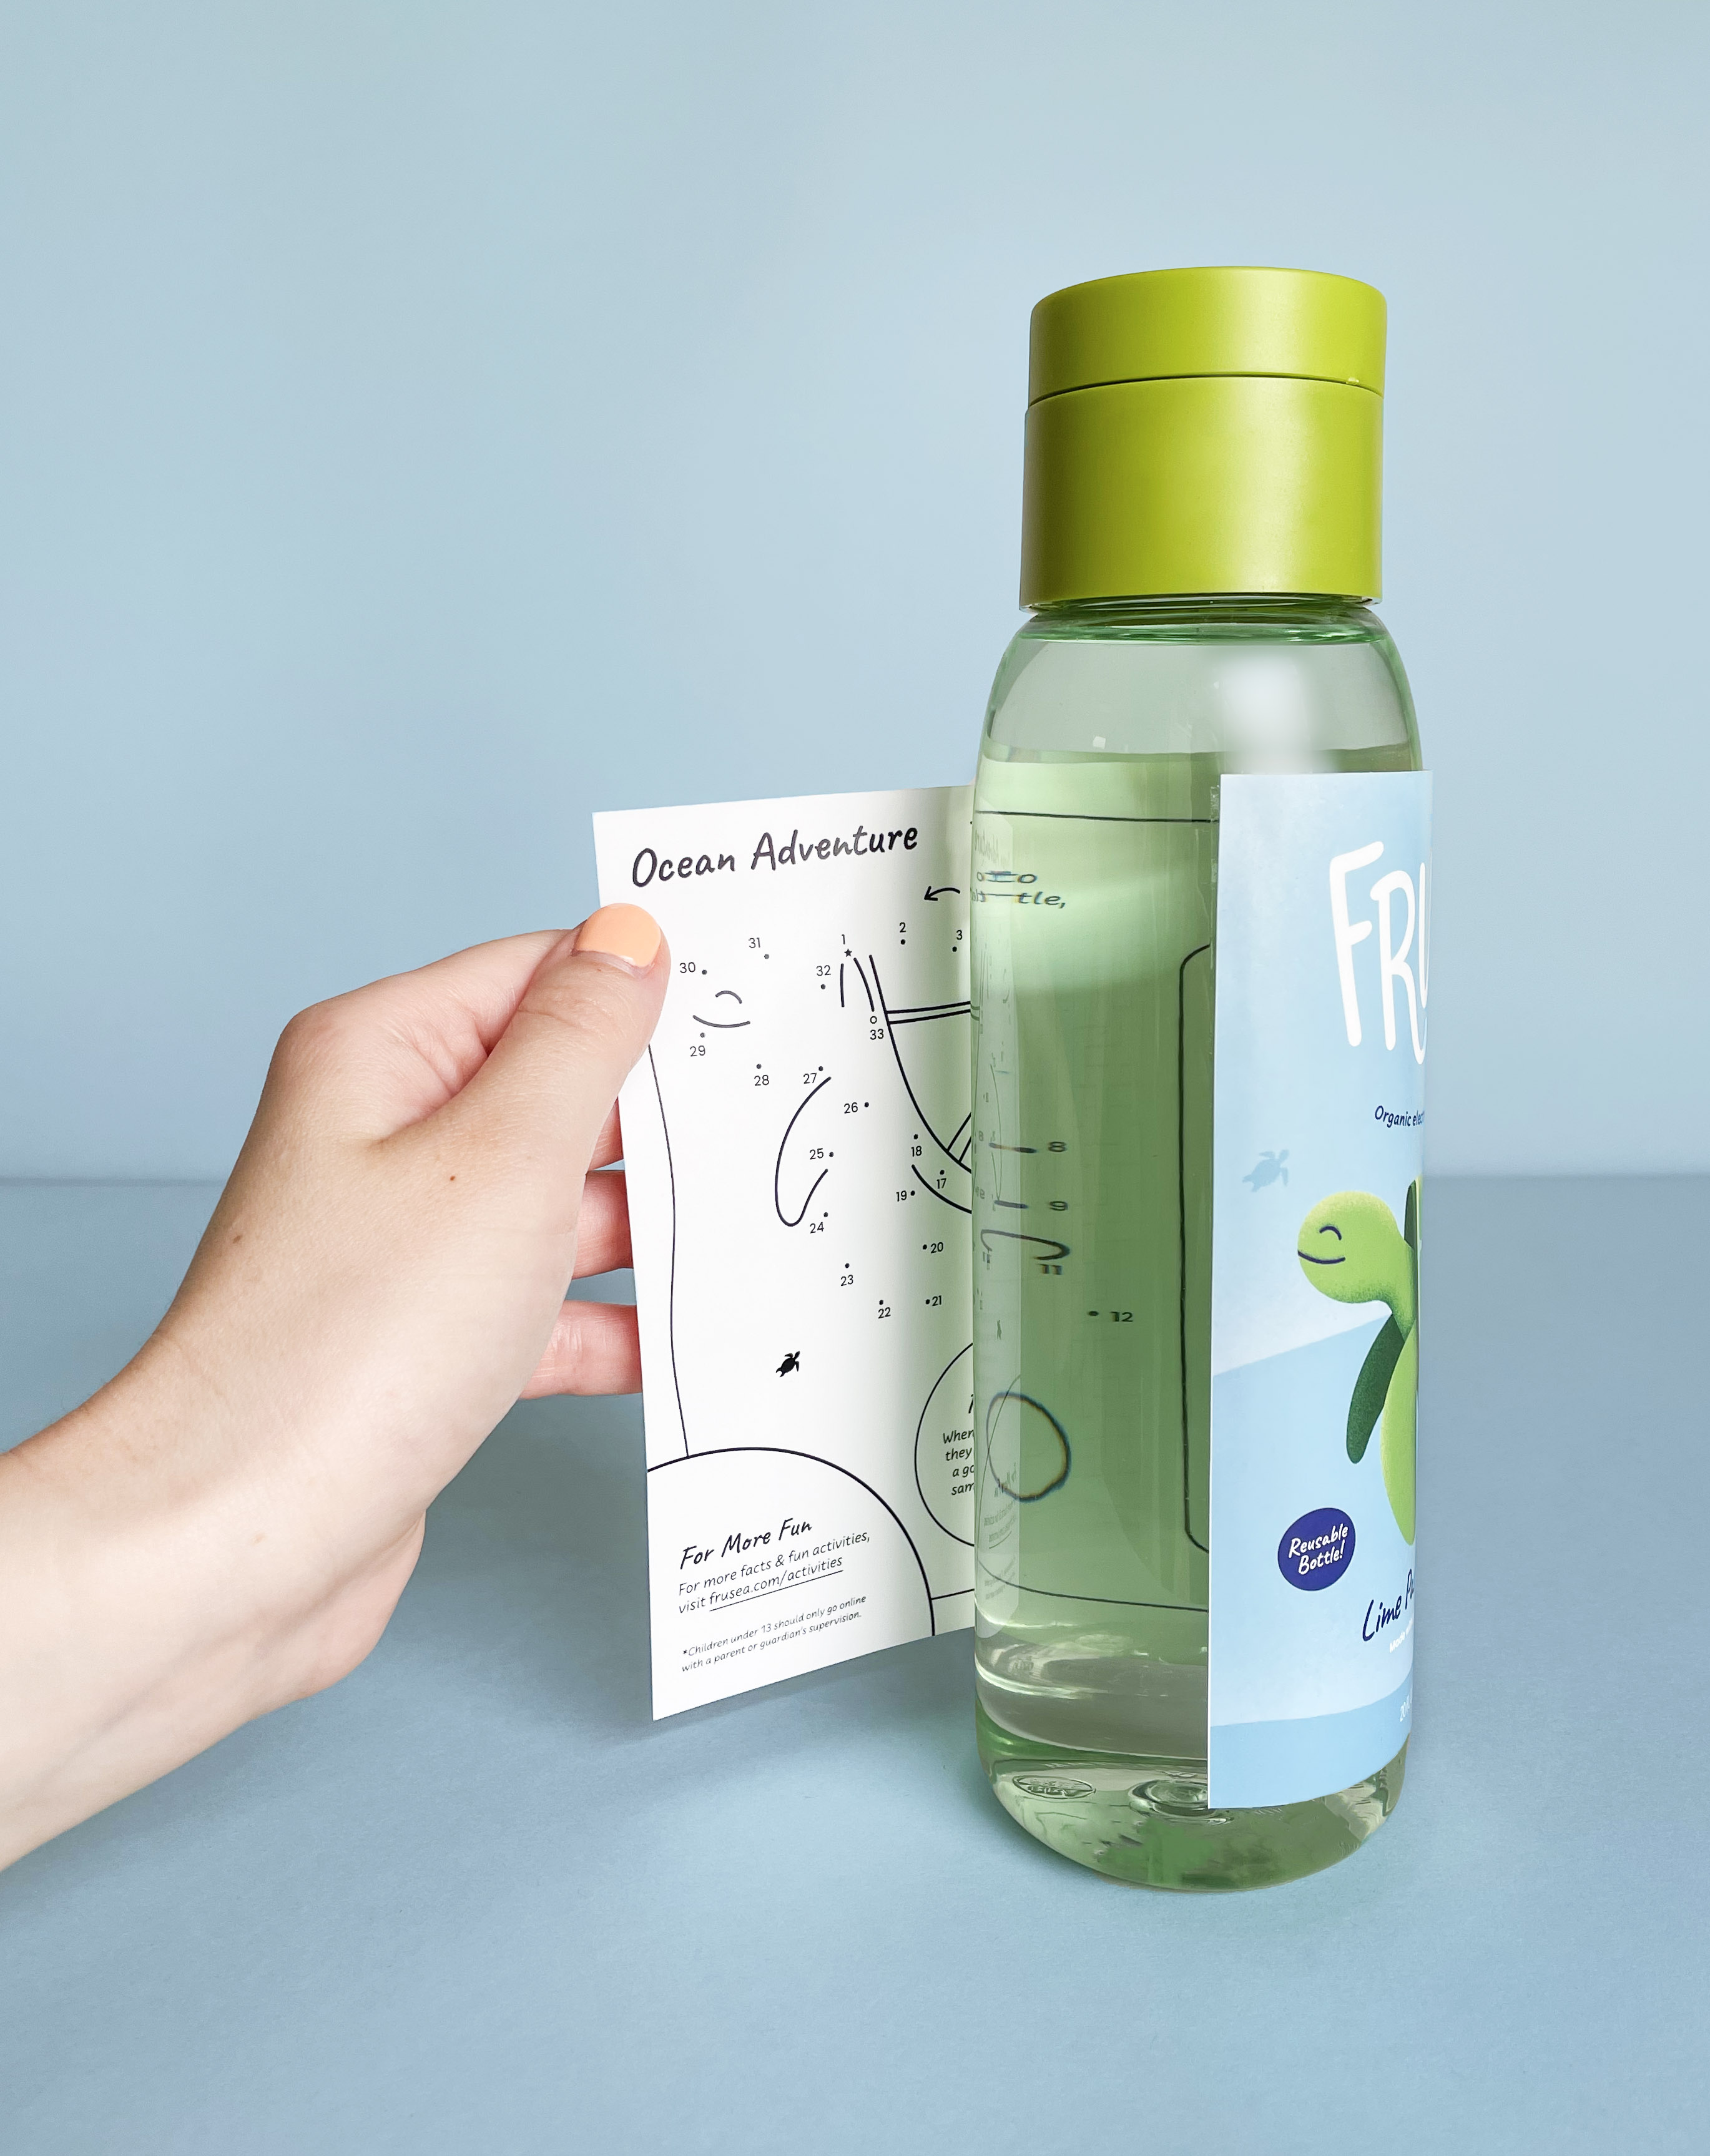 A hand peeling away the bottle label to reveal the activity sheet on the reverse